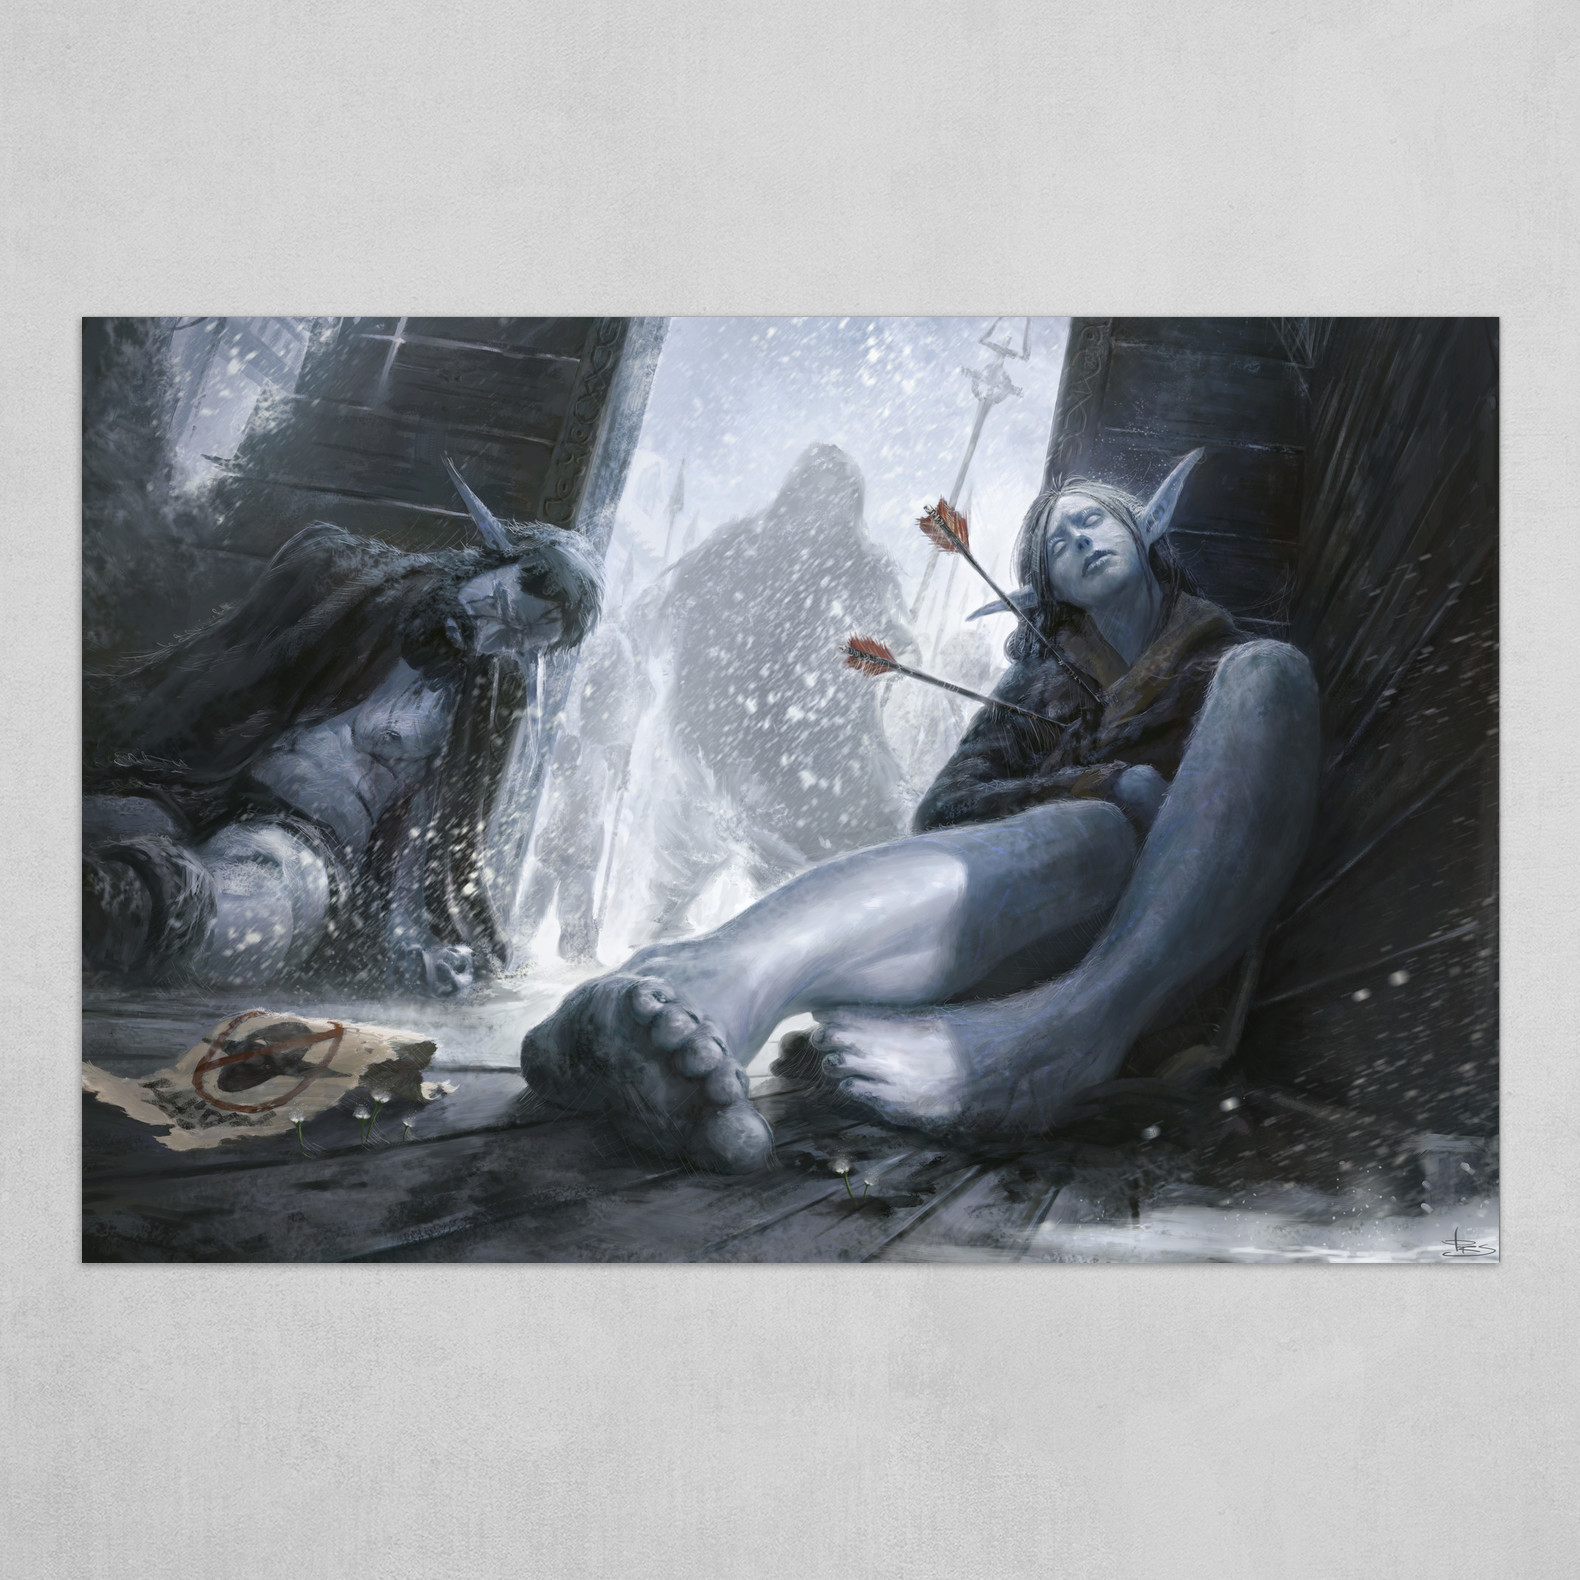 Cleansing of the elves